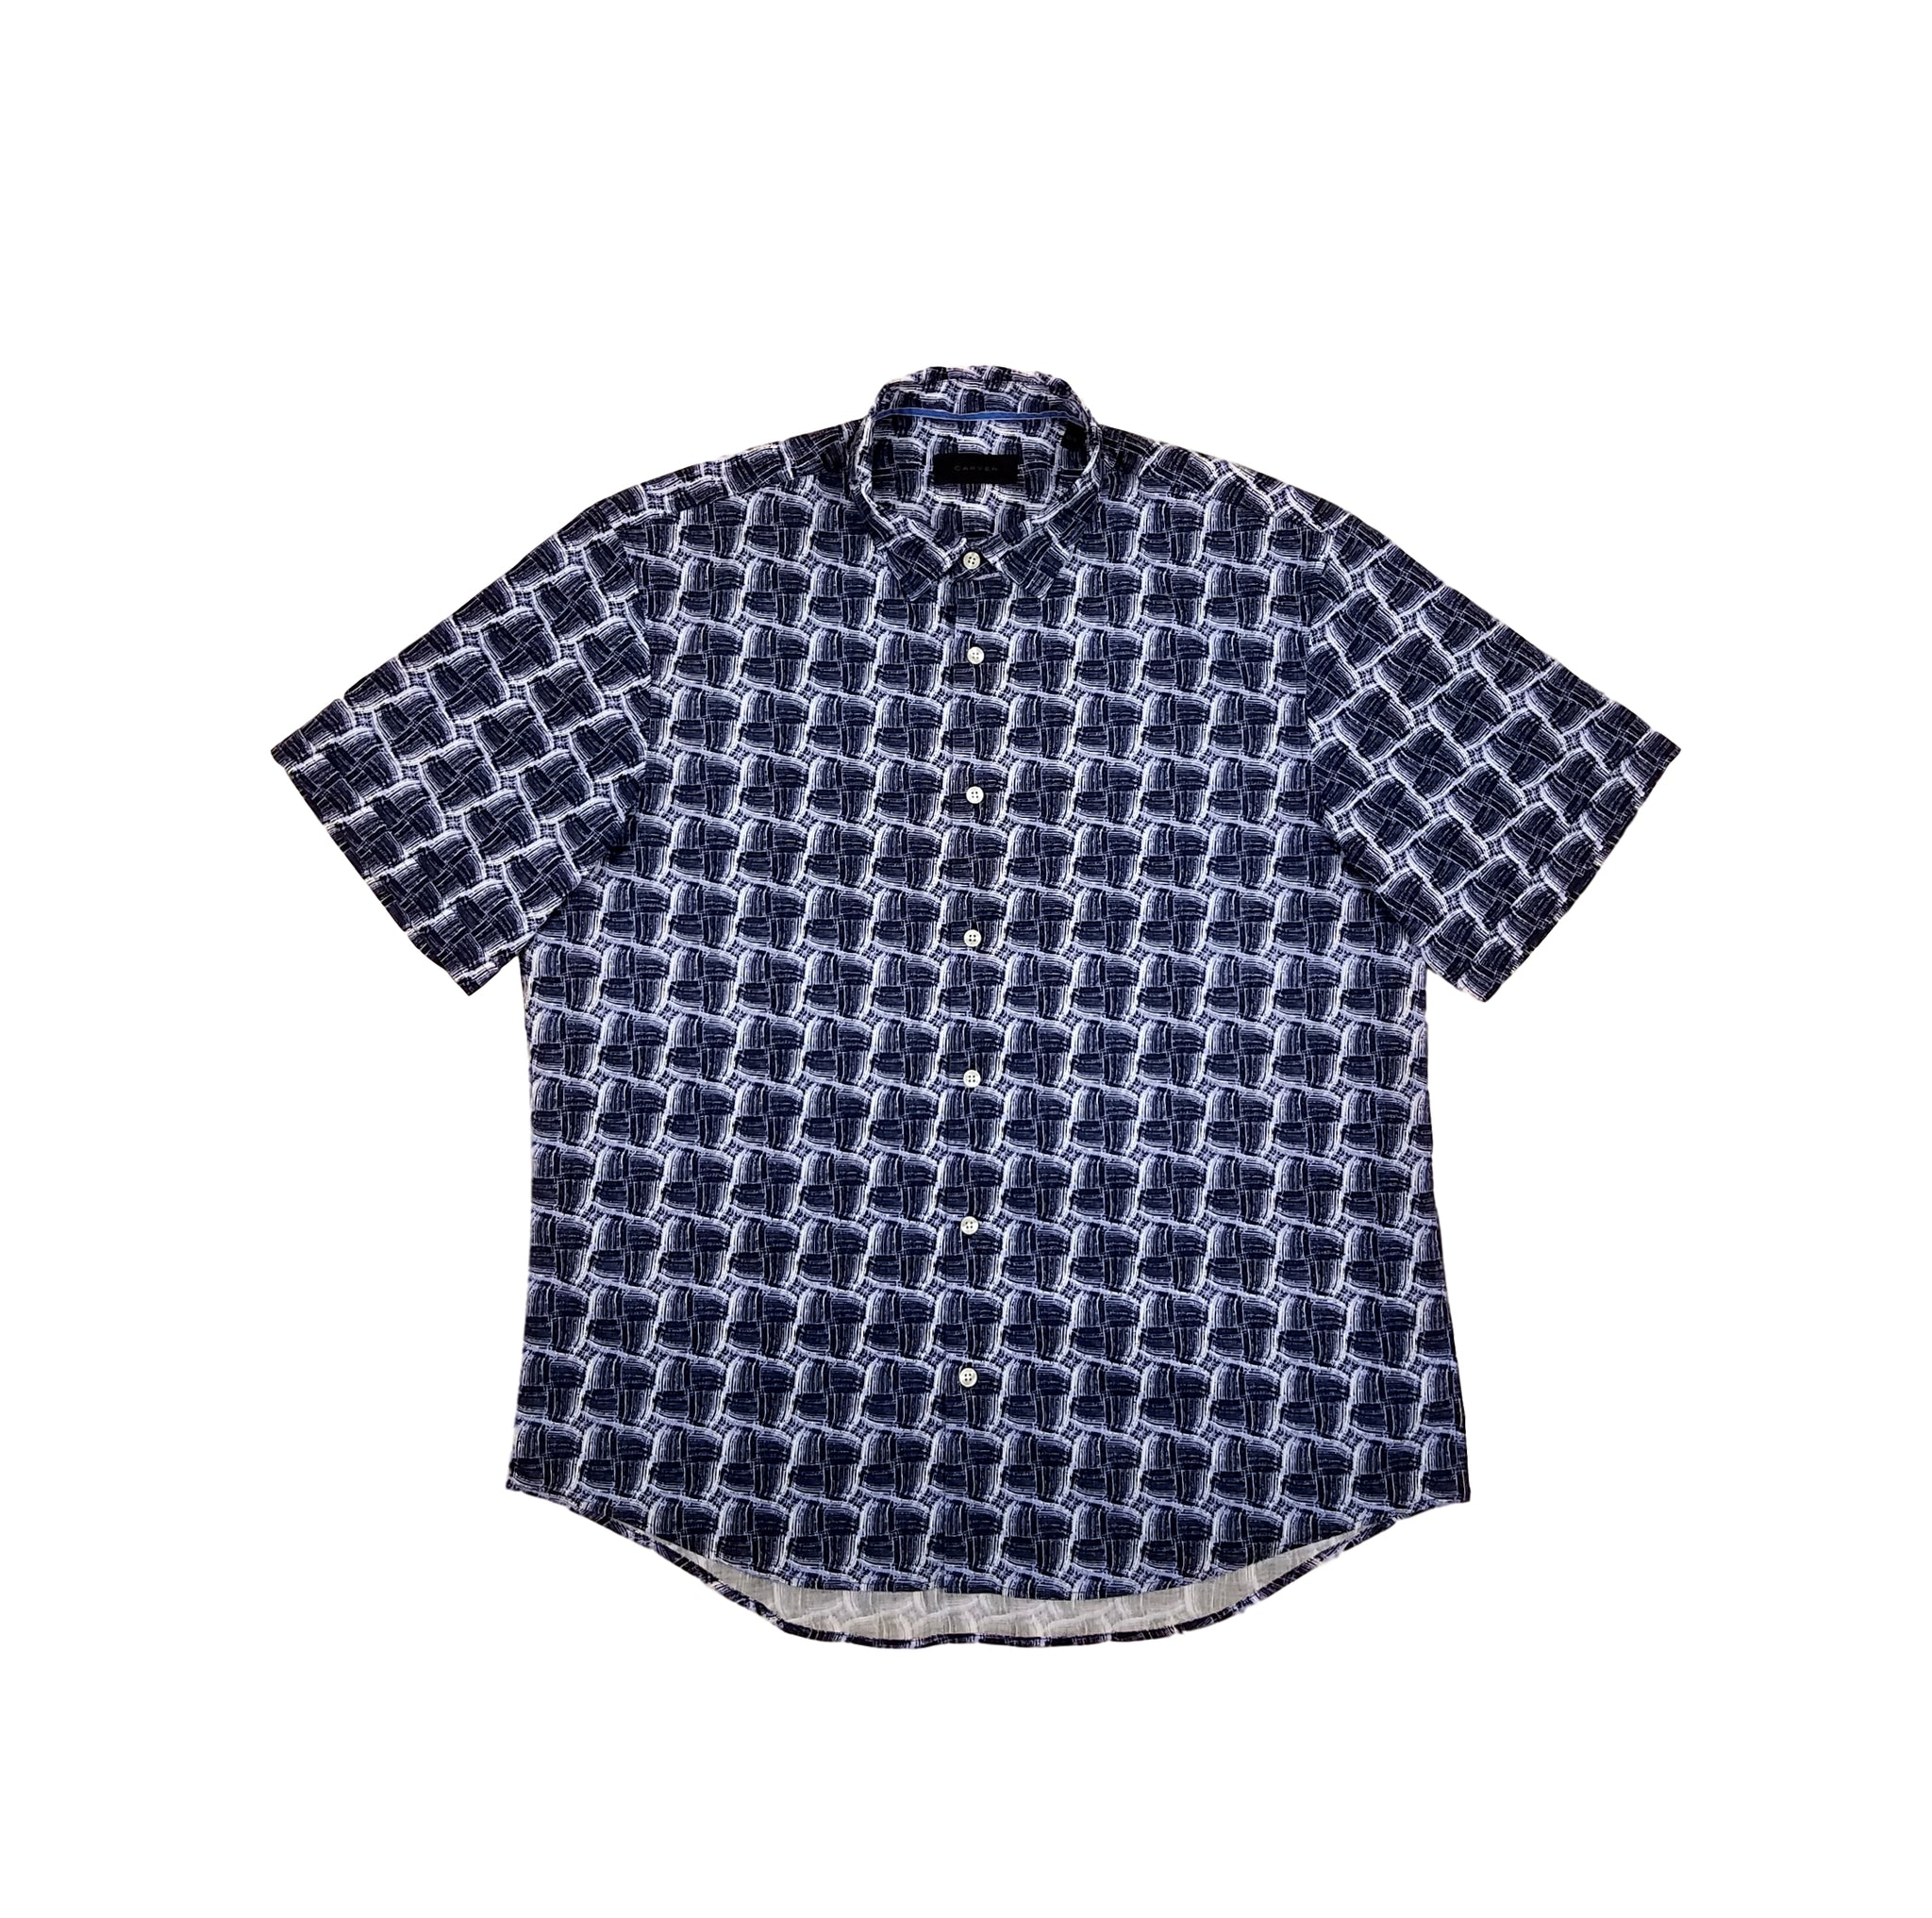 Carven Men's Short Sleeve Print Shirt CV-T02H-033